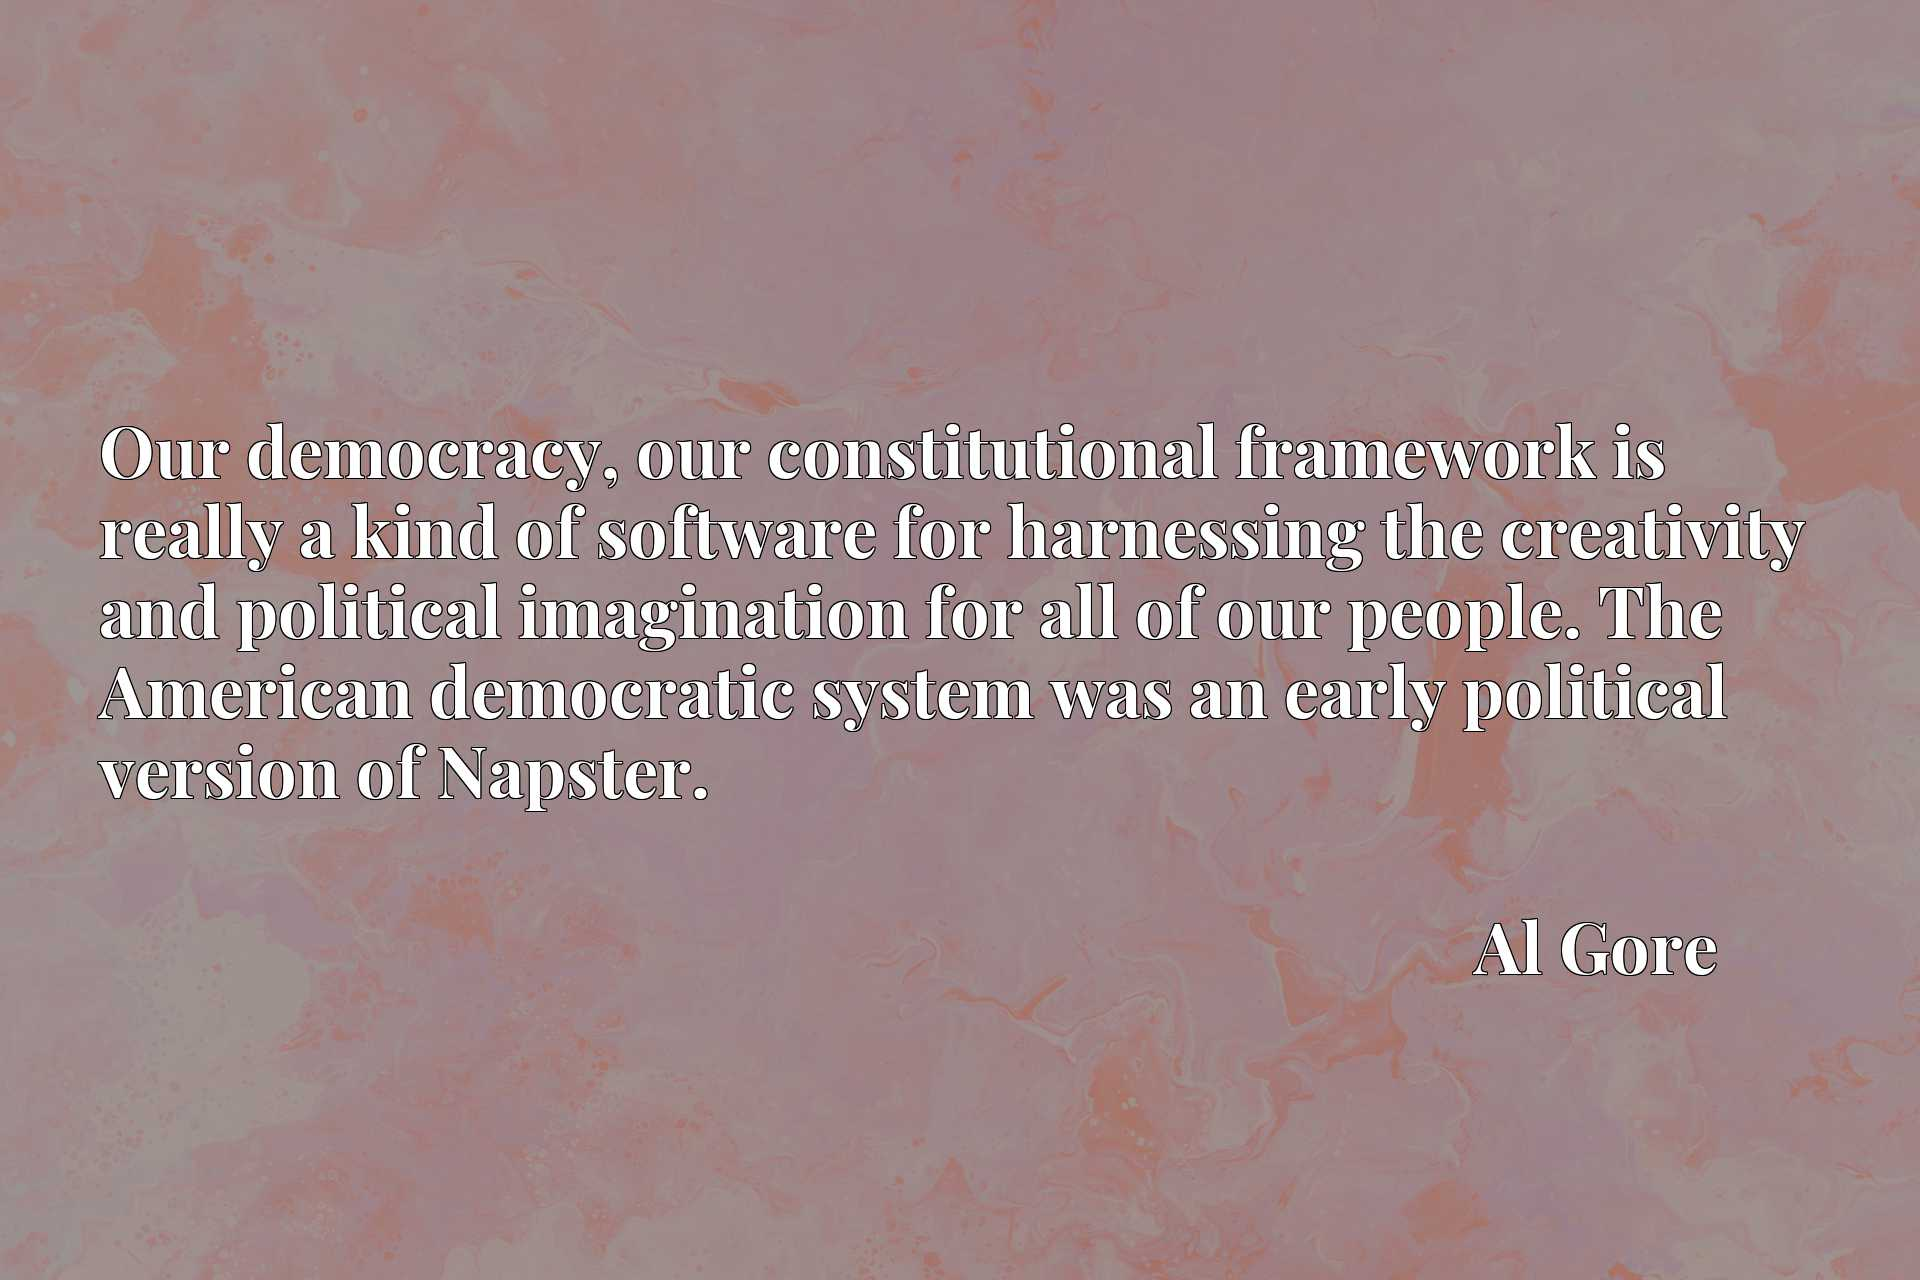 Quote Picture :Our democracy, our constitutional framework is really a kind of software for harnessing the creativity and political imagination for all of our people. The American democratic system was an early political version of Napster.